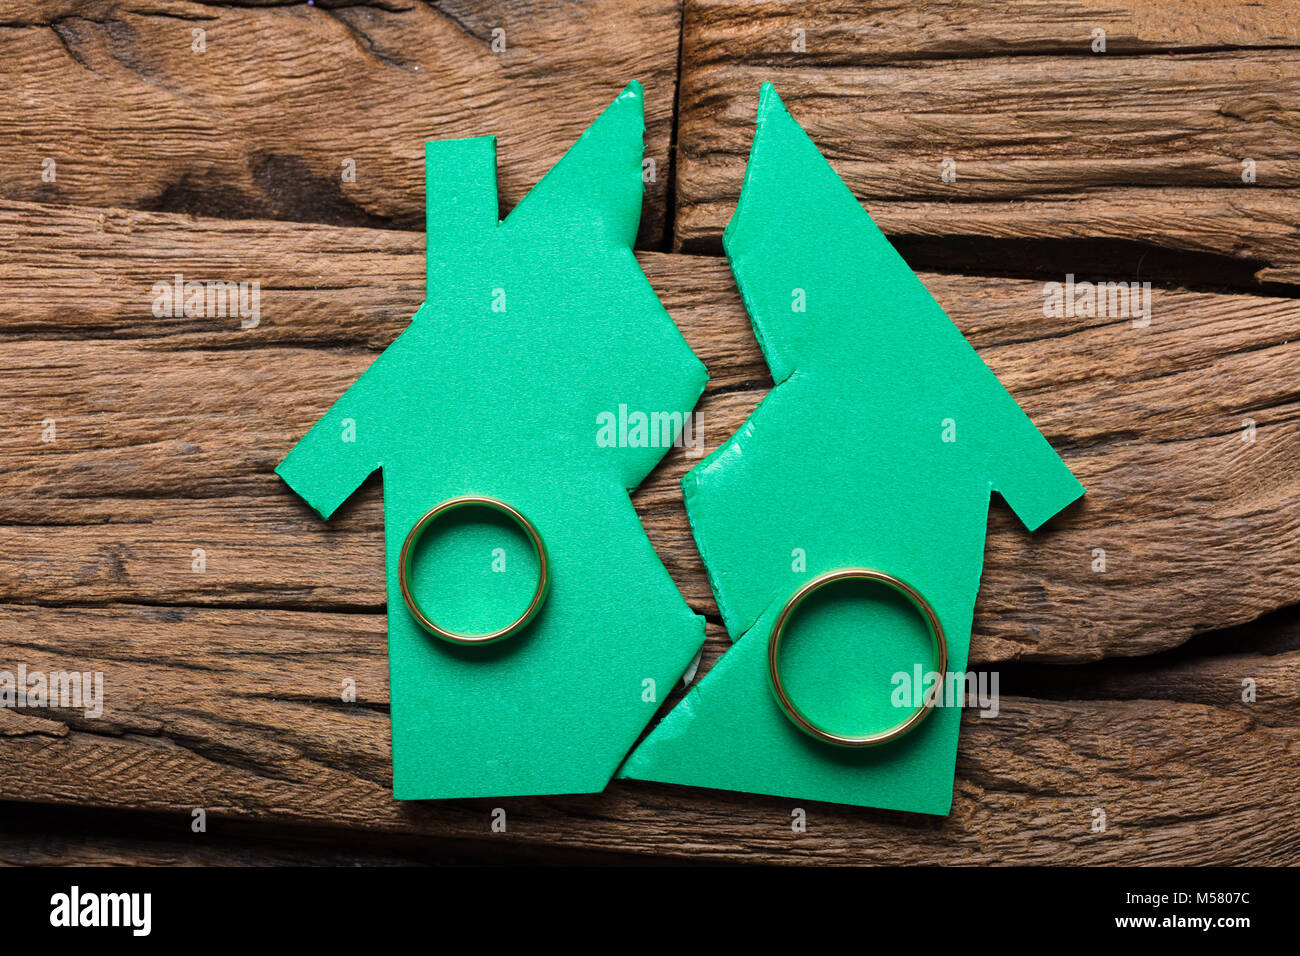 Closeup of rings on broken model house on wood representing relationship difficulties - Stock Image